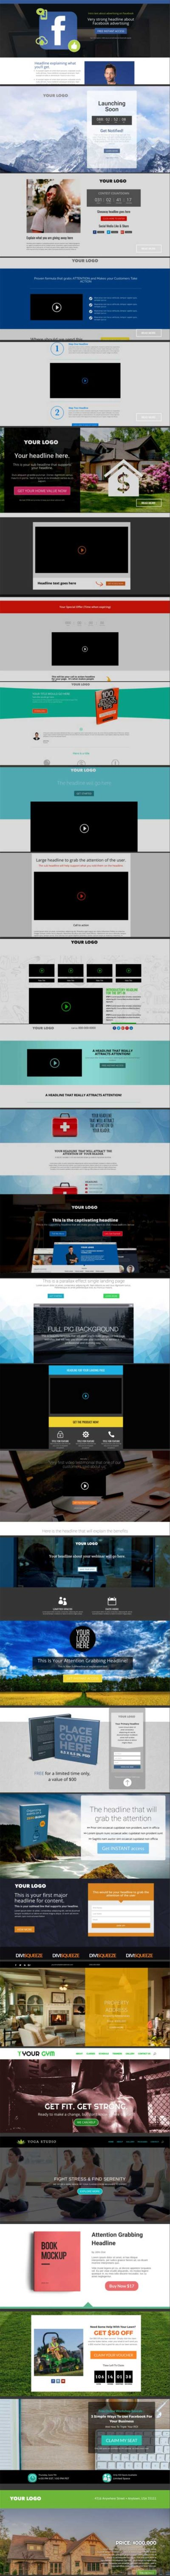 divi-squeeze-layout-bundle